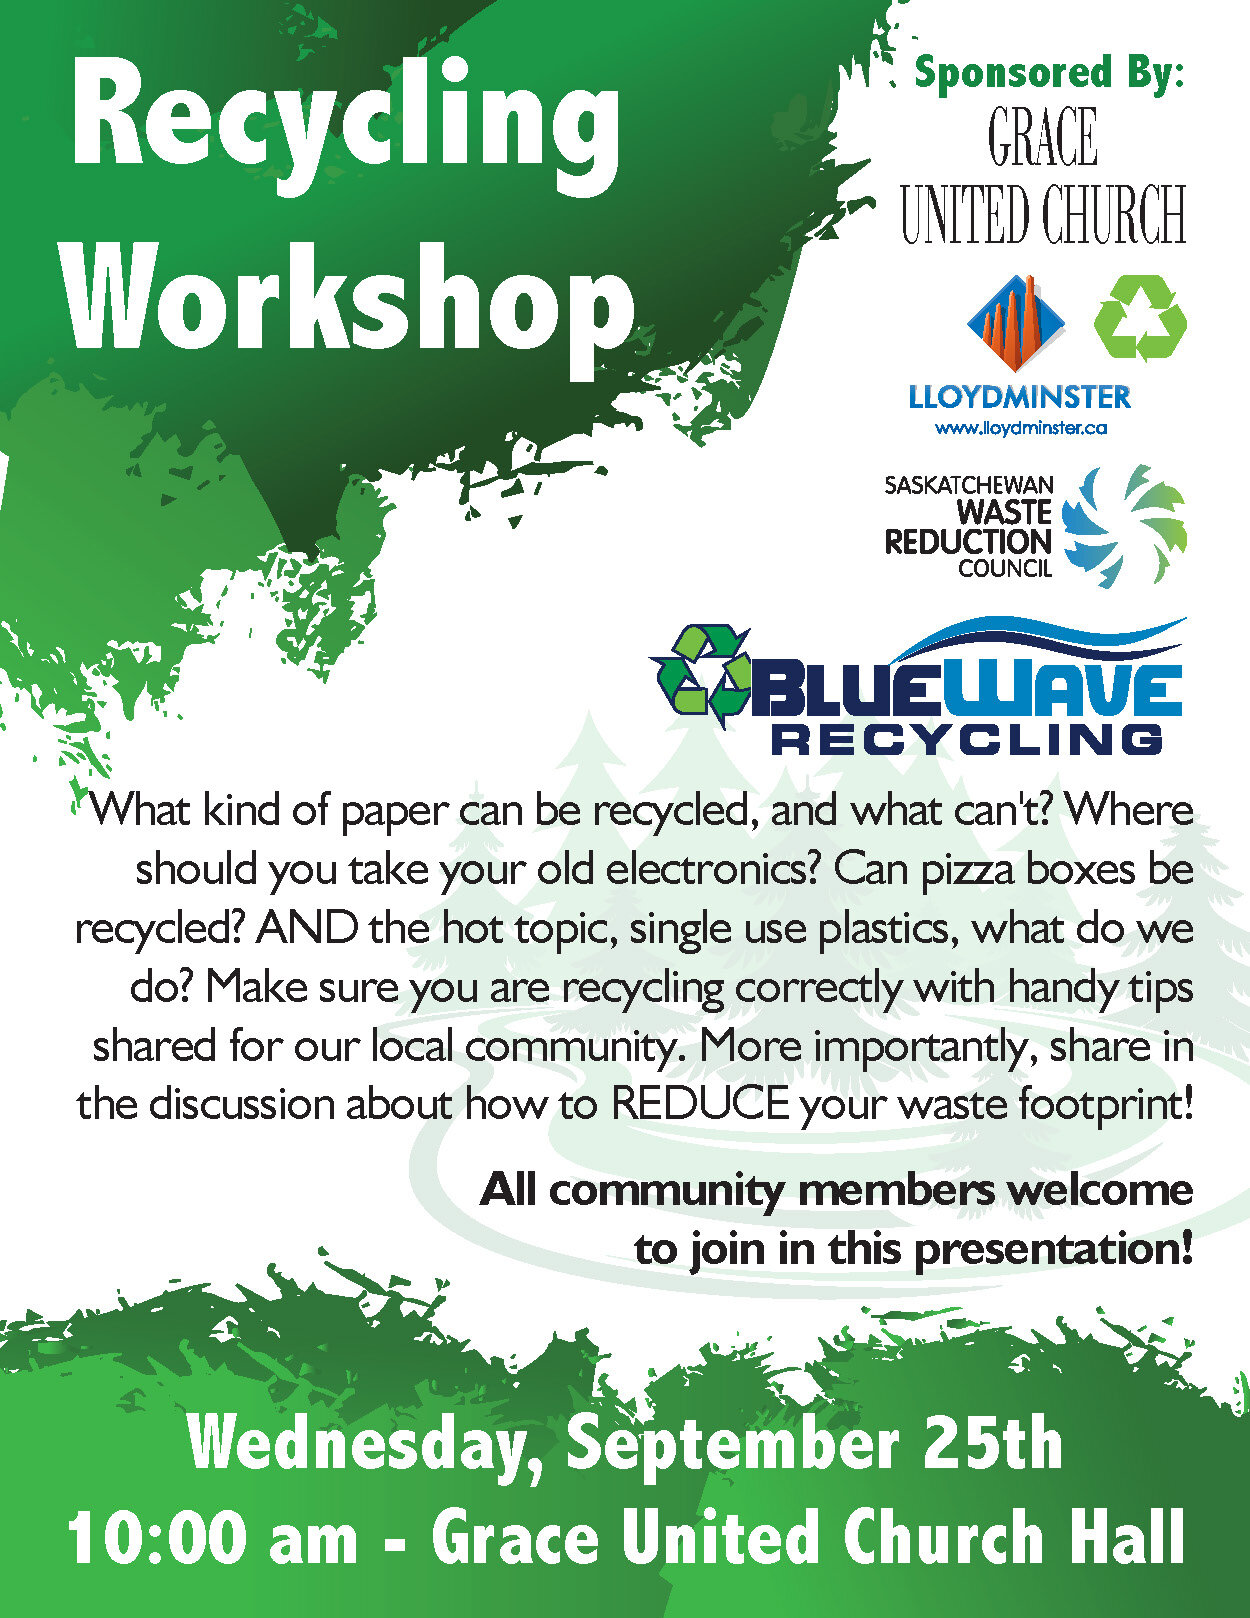 GUC_Recycling Posters_Sept19.jpg